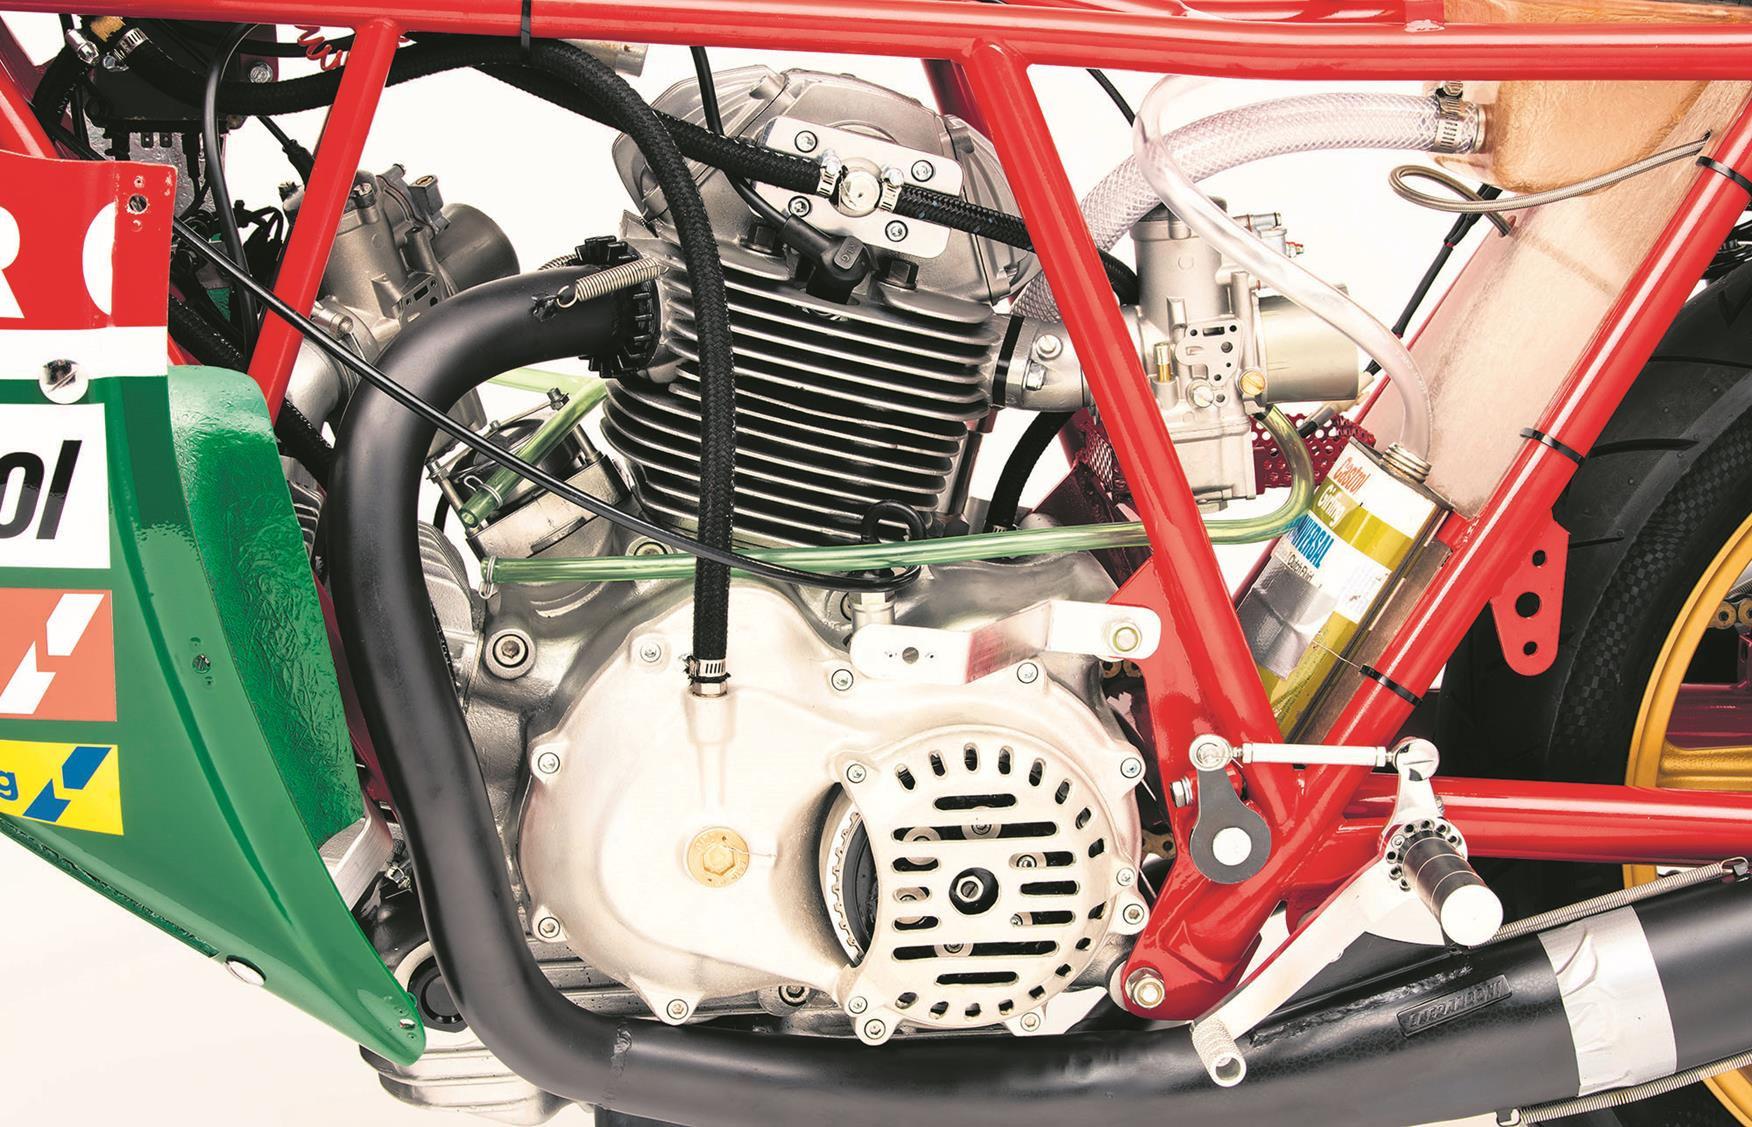 The bevel-drive twin is identical to Hailwood's bike